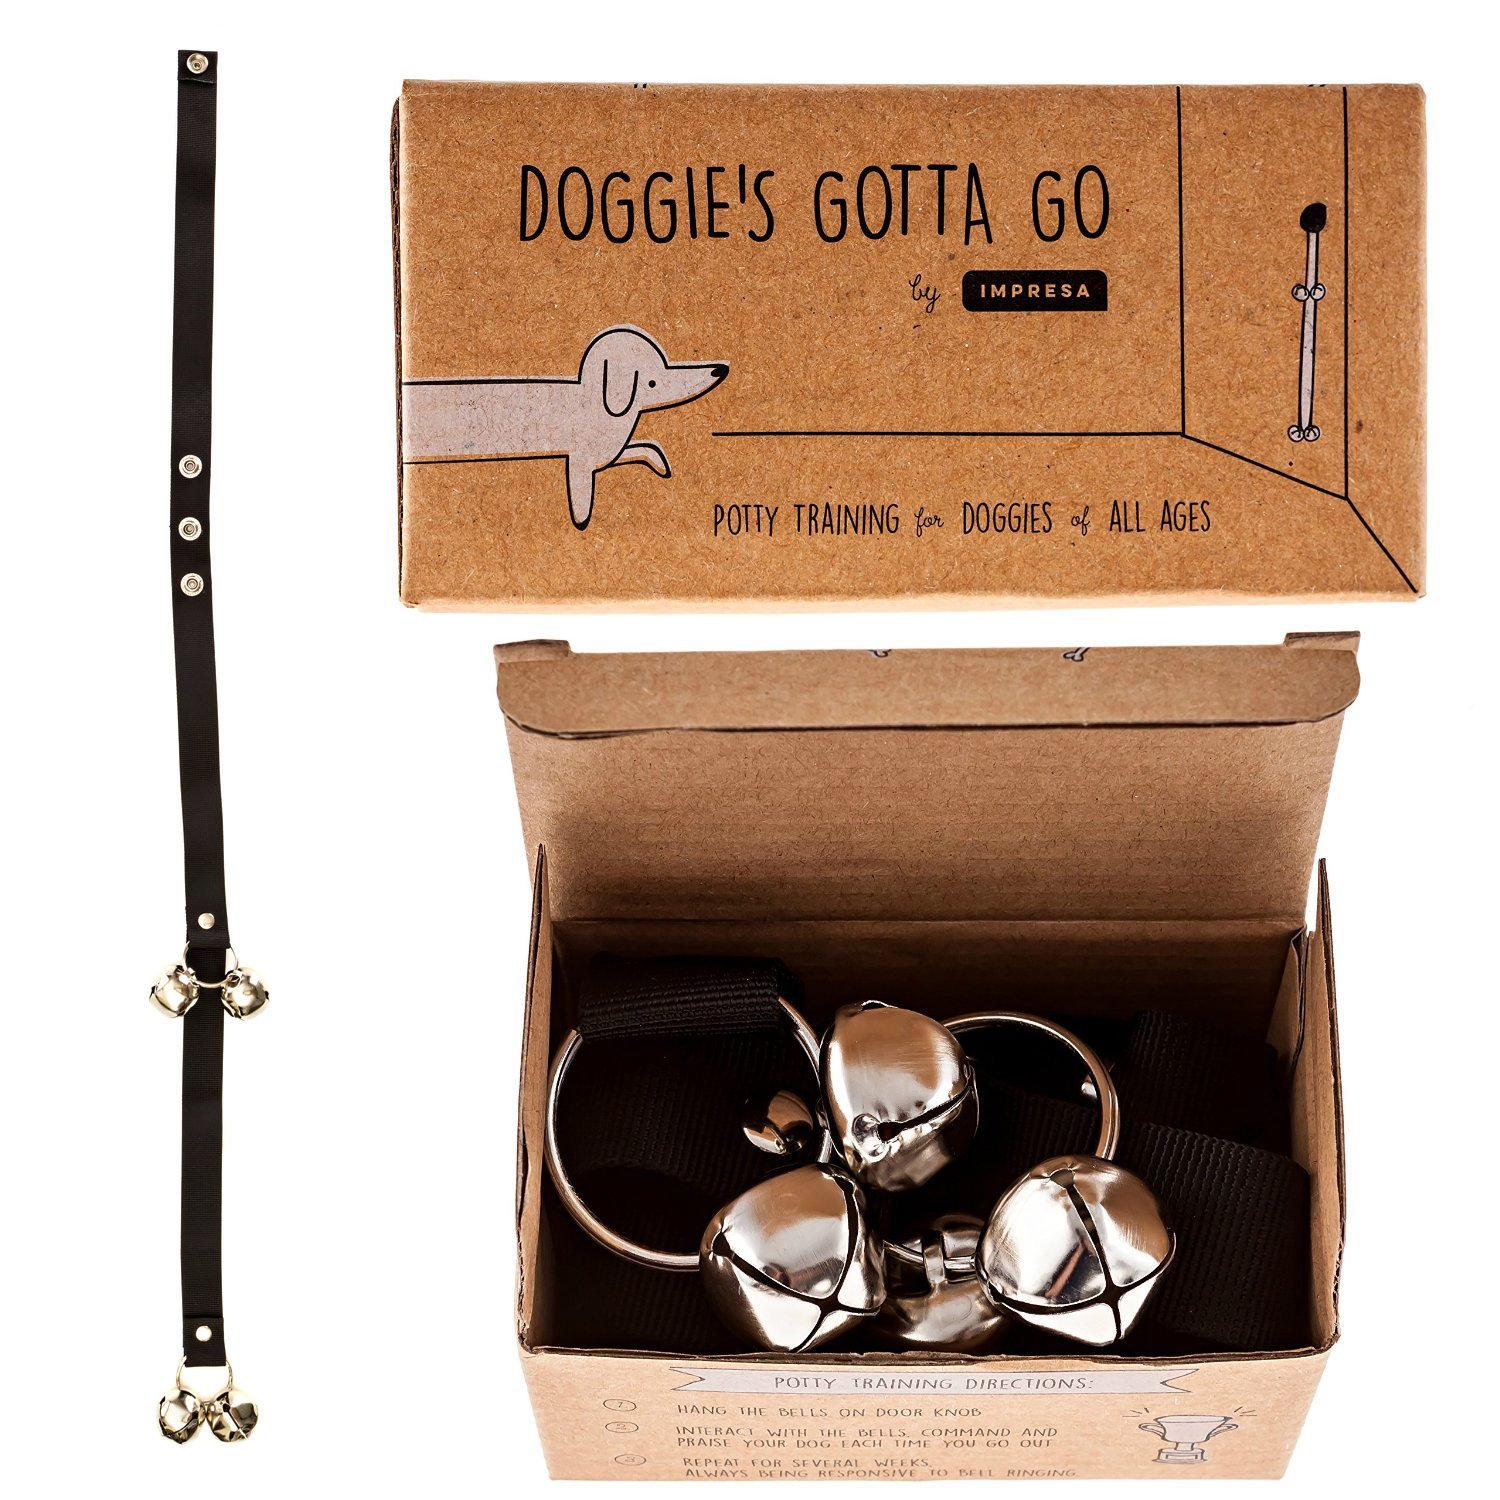 Dog Bells for Potty Training - Doggie Doorbell for Housetraining Your Doggy o